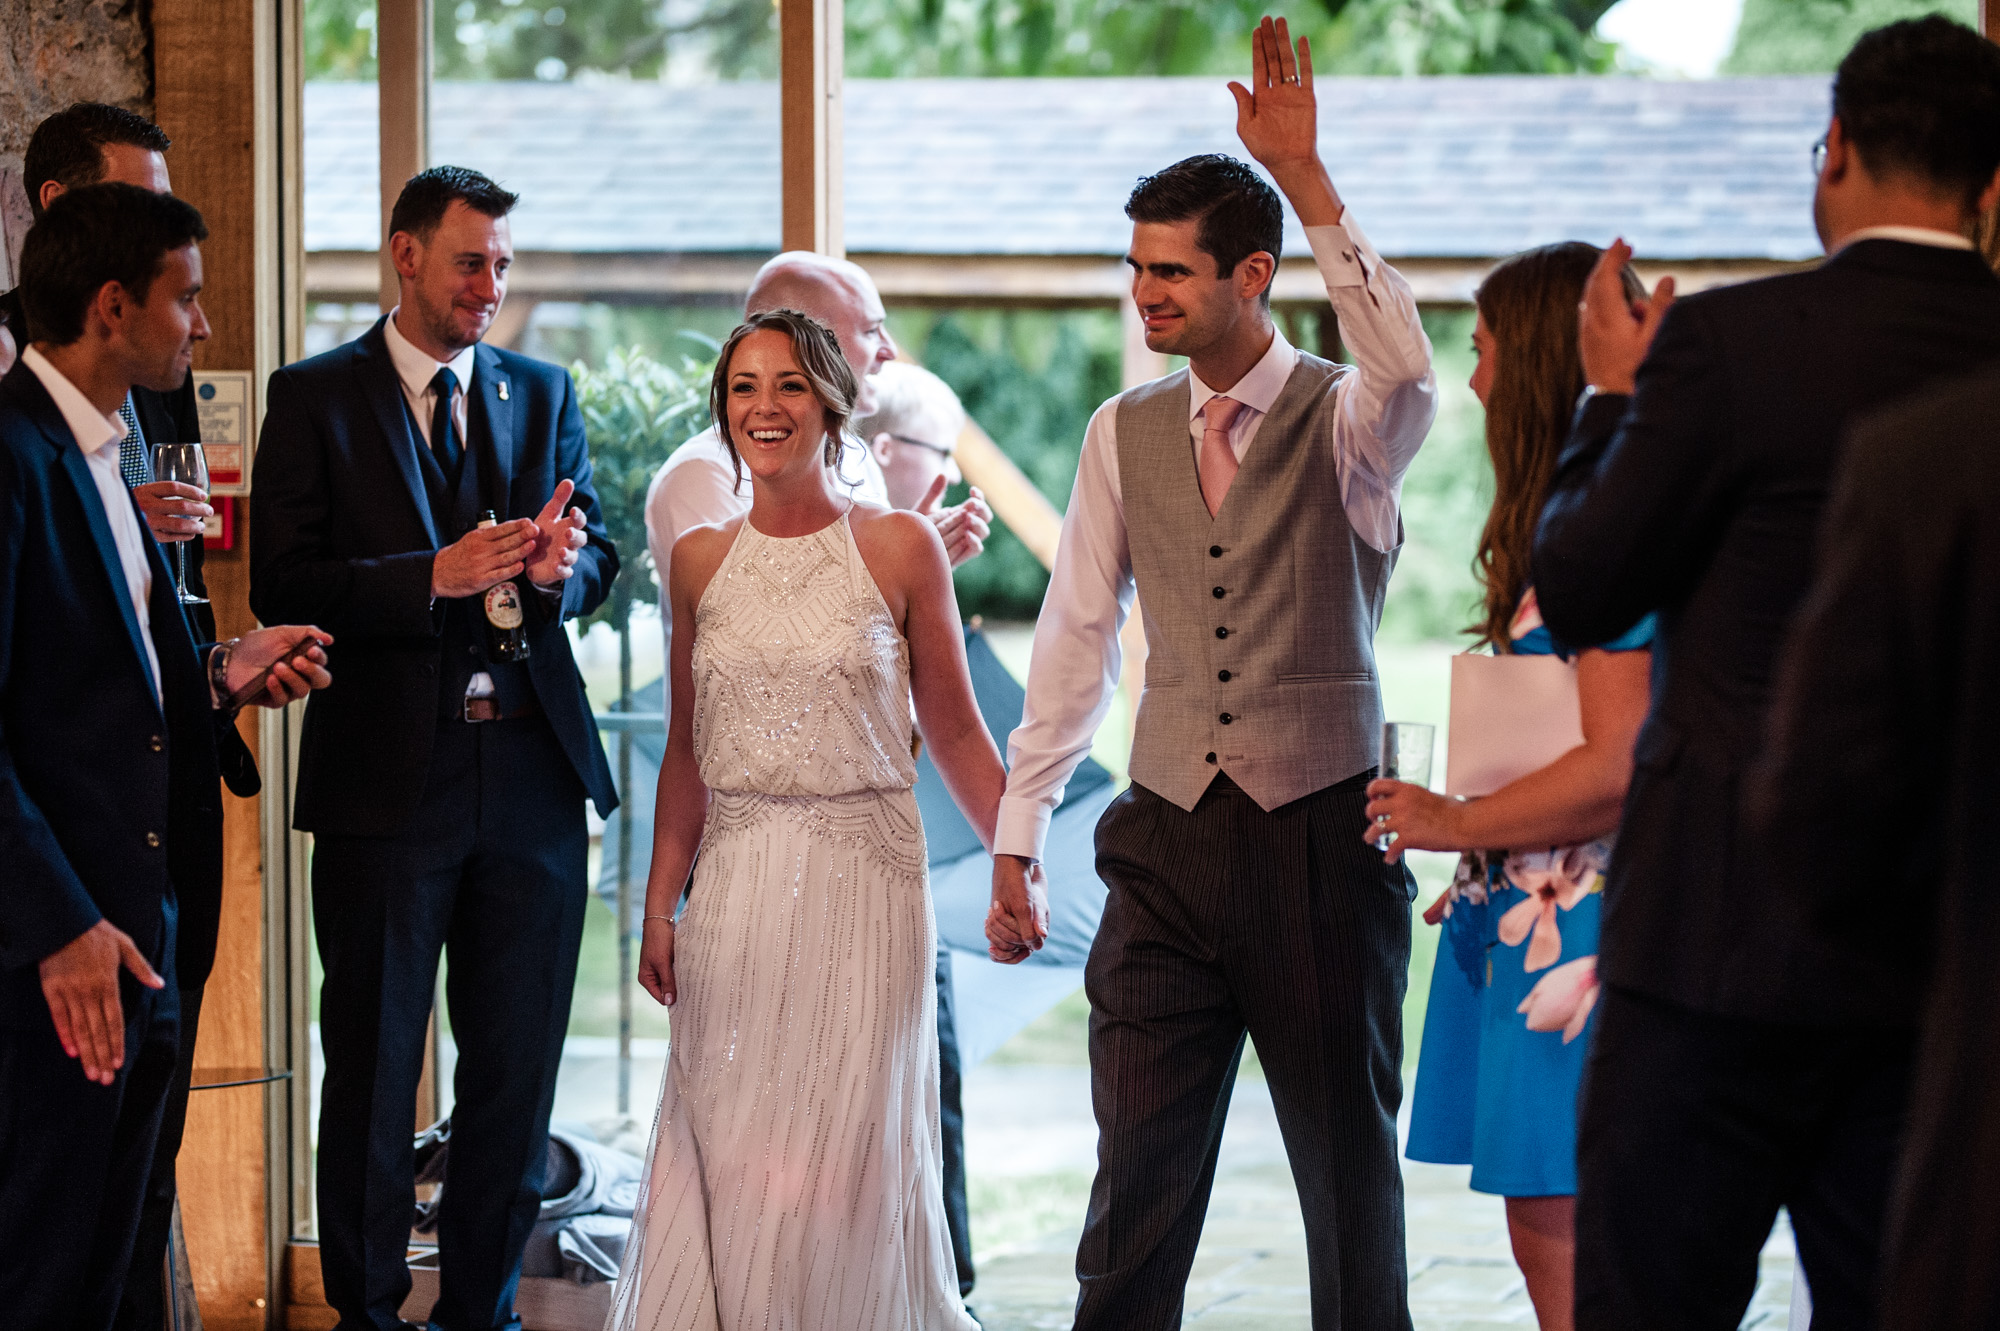 Notley Barn Wedding 26.10.18 31.jpg